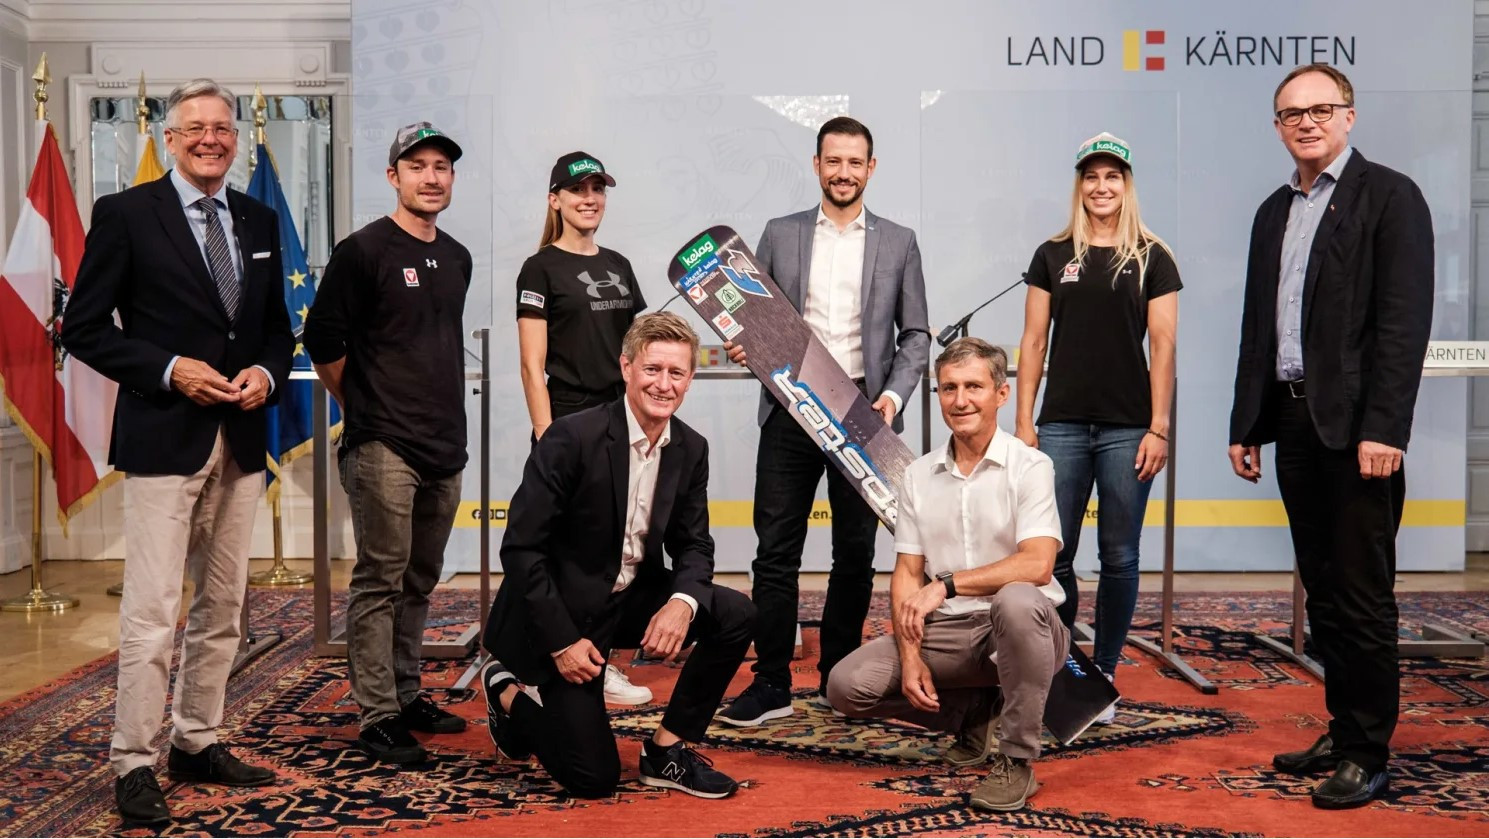 Simonhöhe named as a host for the FIS Snowboard Alpine World Cup